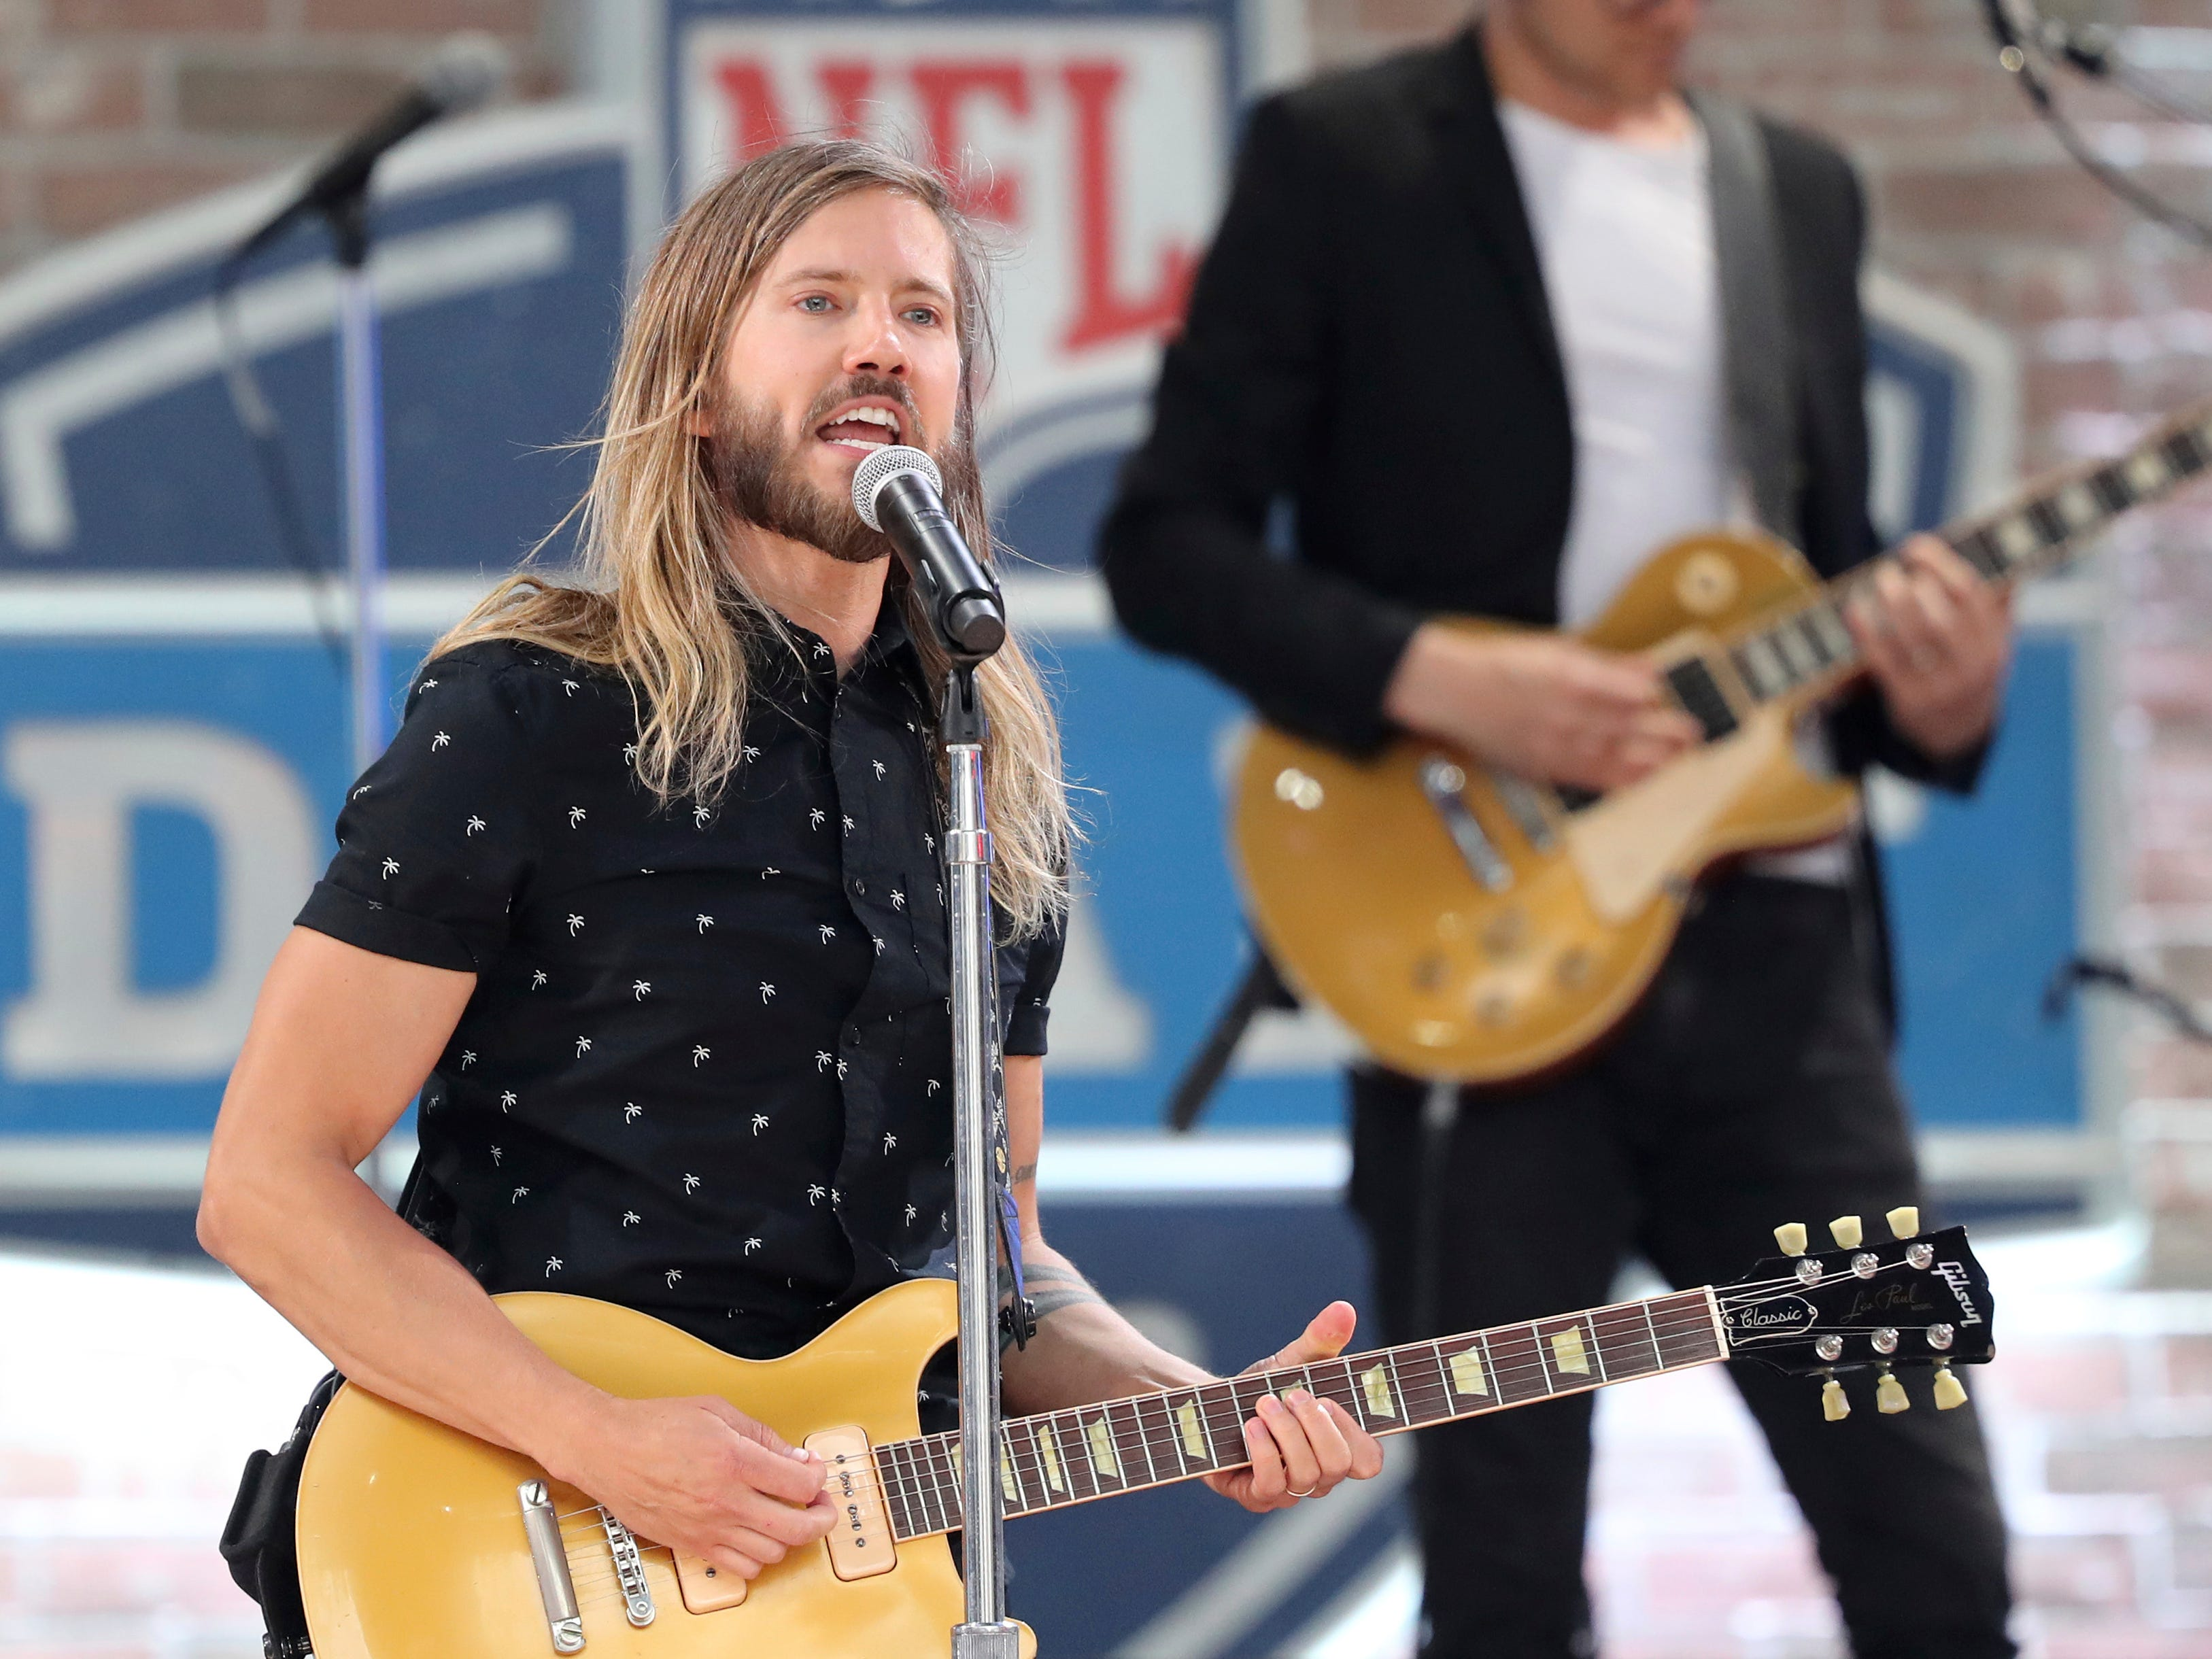 The band Moon Taxi performs before the start of the NFL draft.